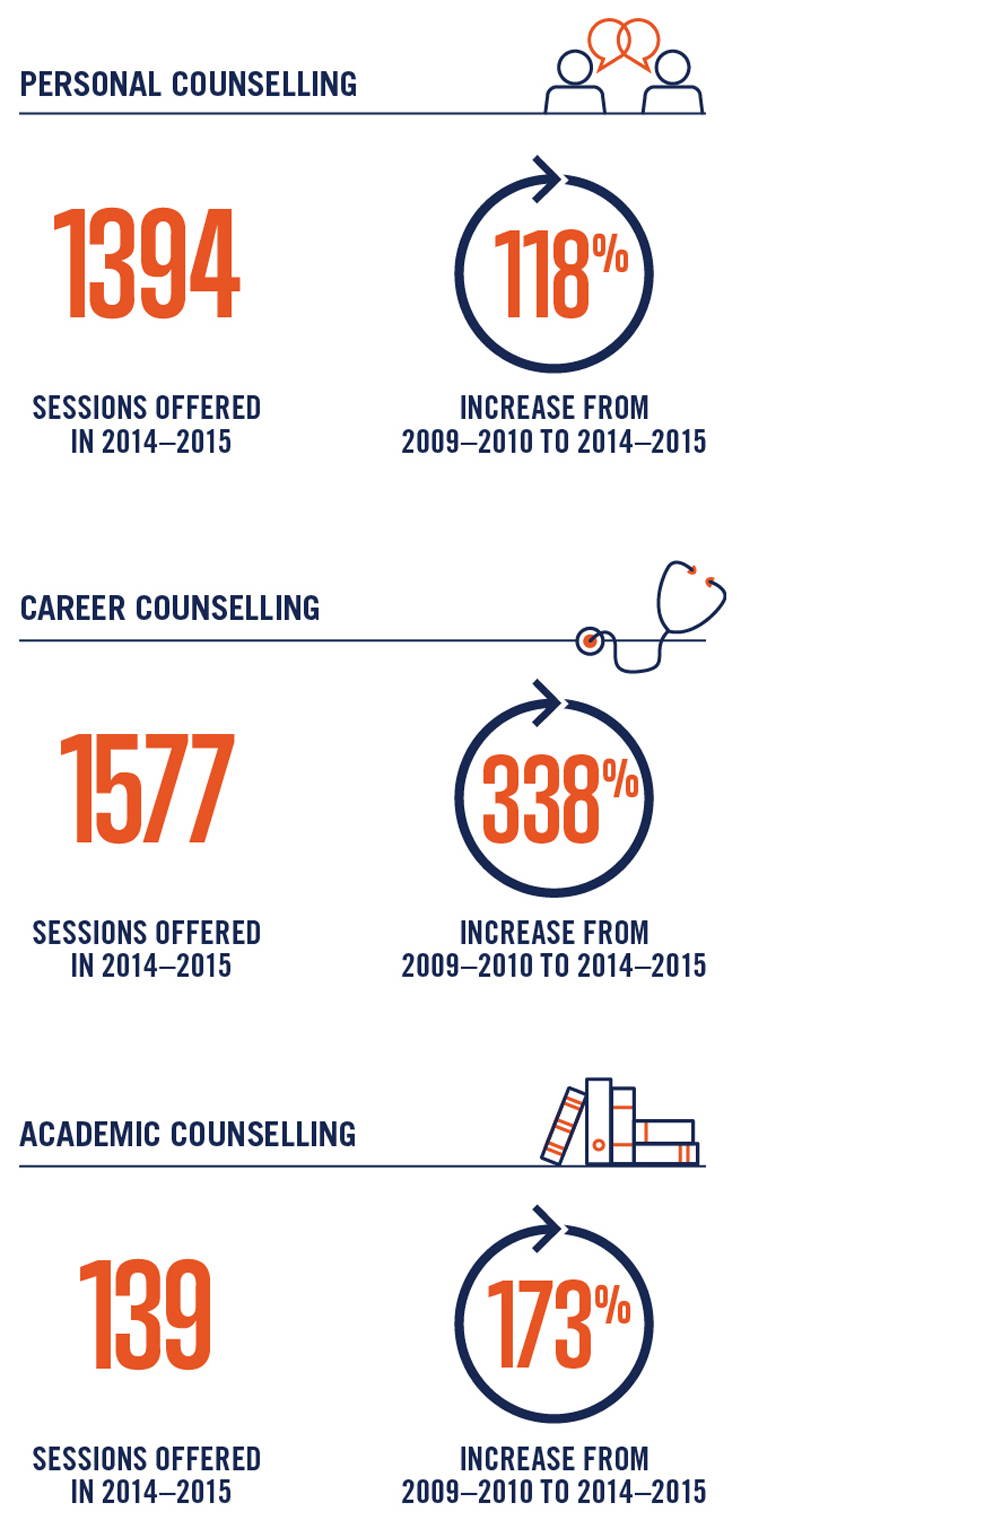 Graphic depicting the increase in number of counselling services